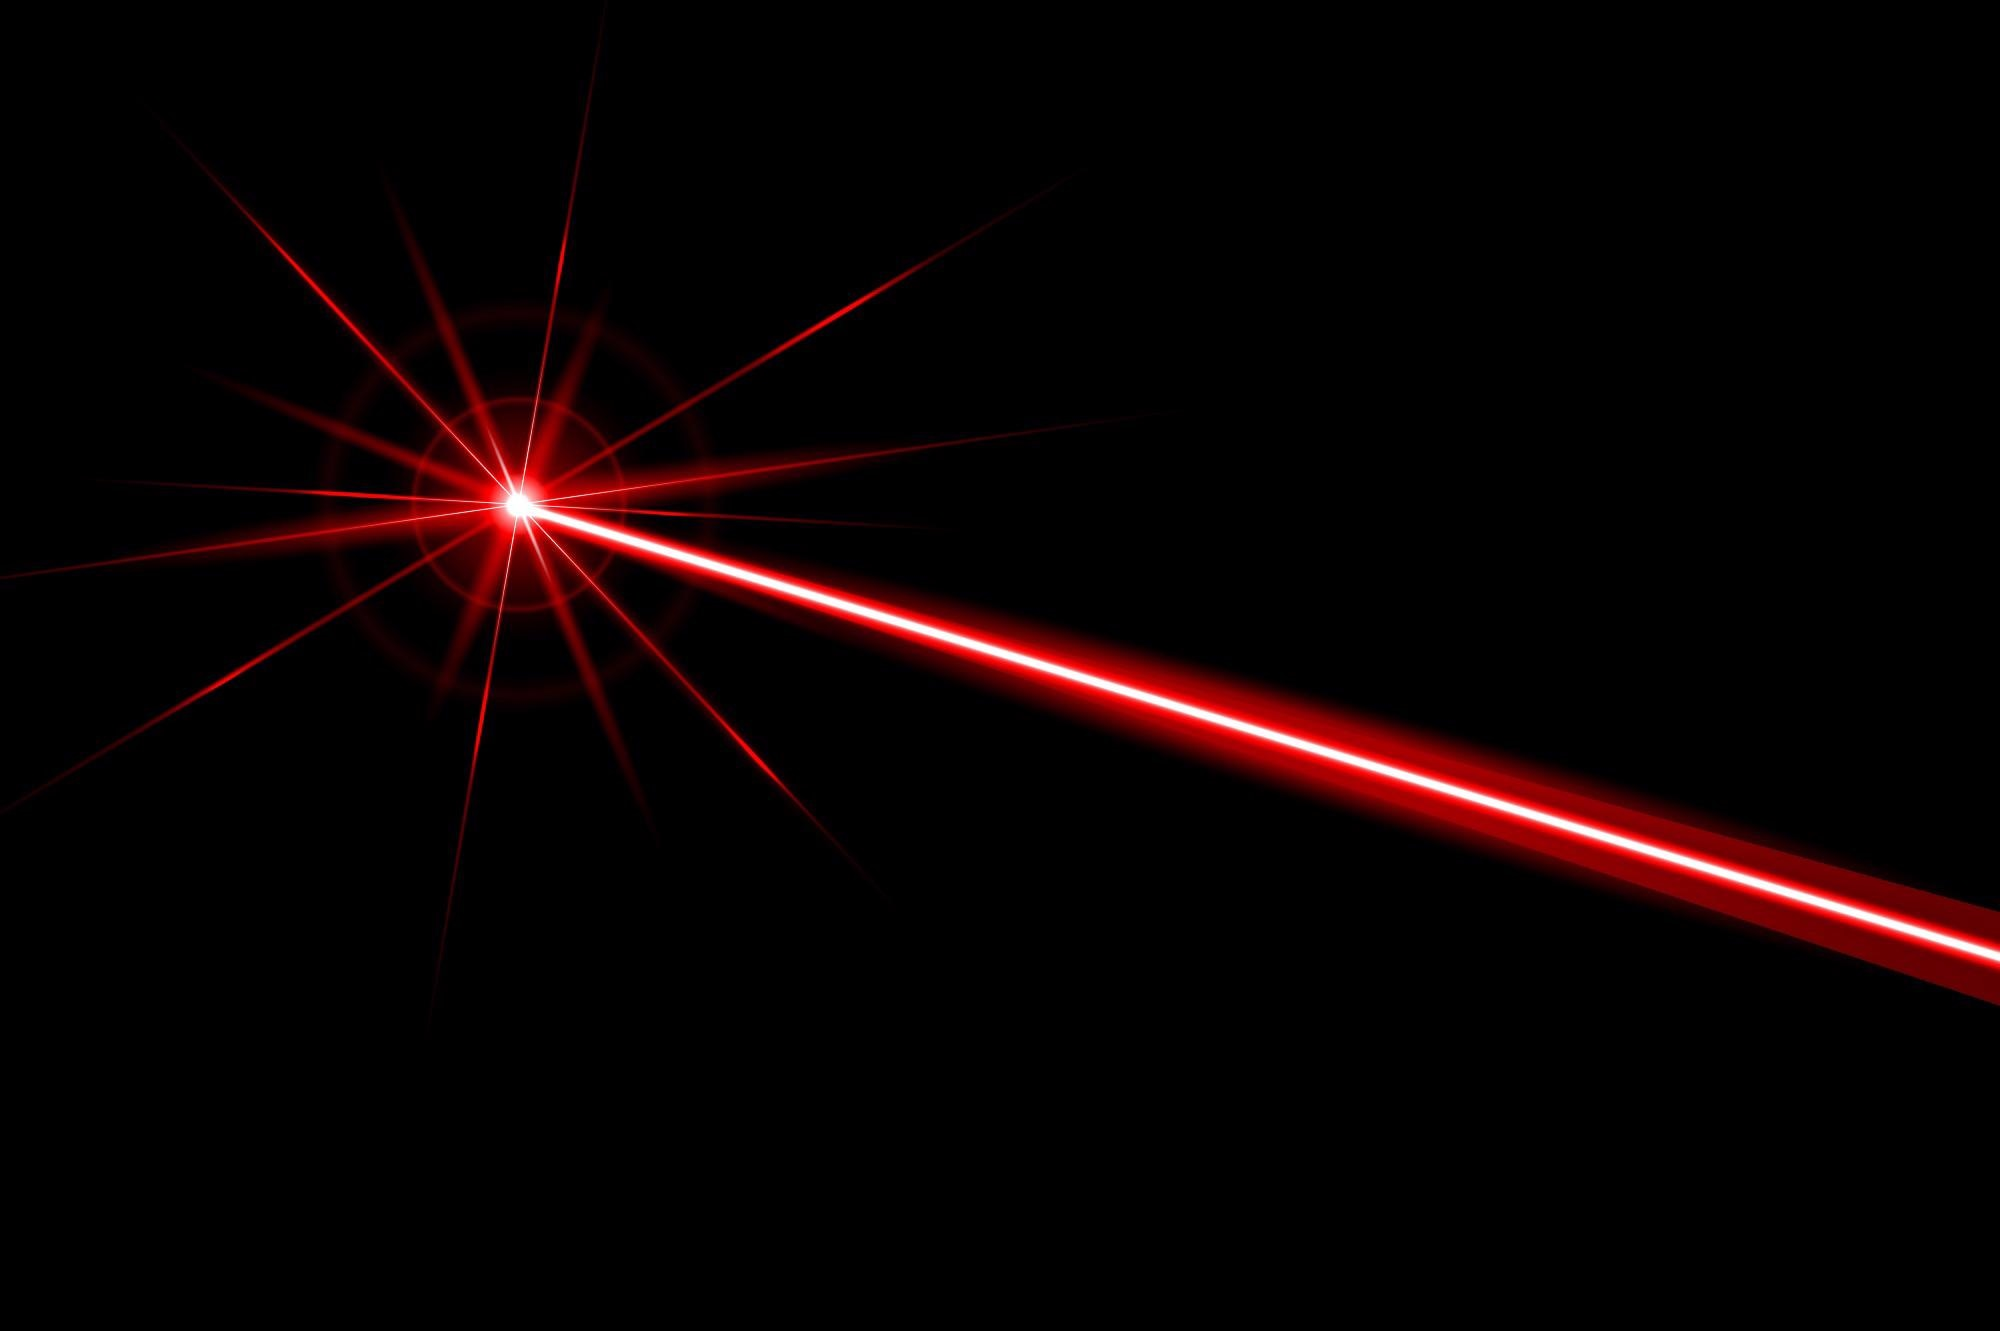 Scientists Demonstrate Trapping Light with Disorder to Acquire Random Laser.